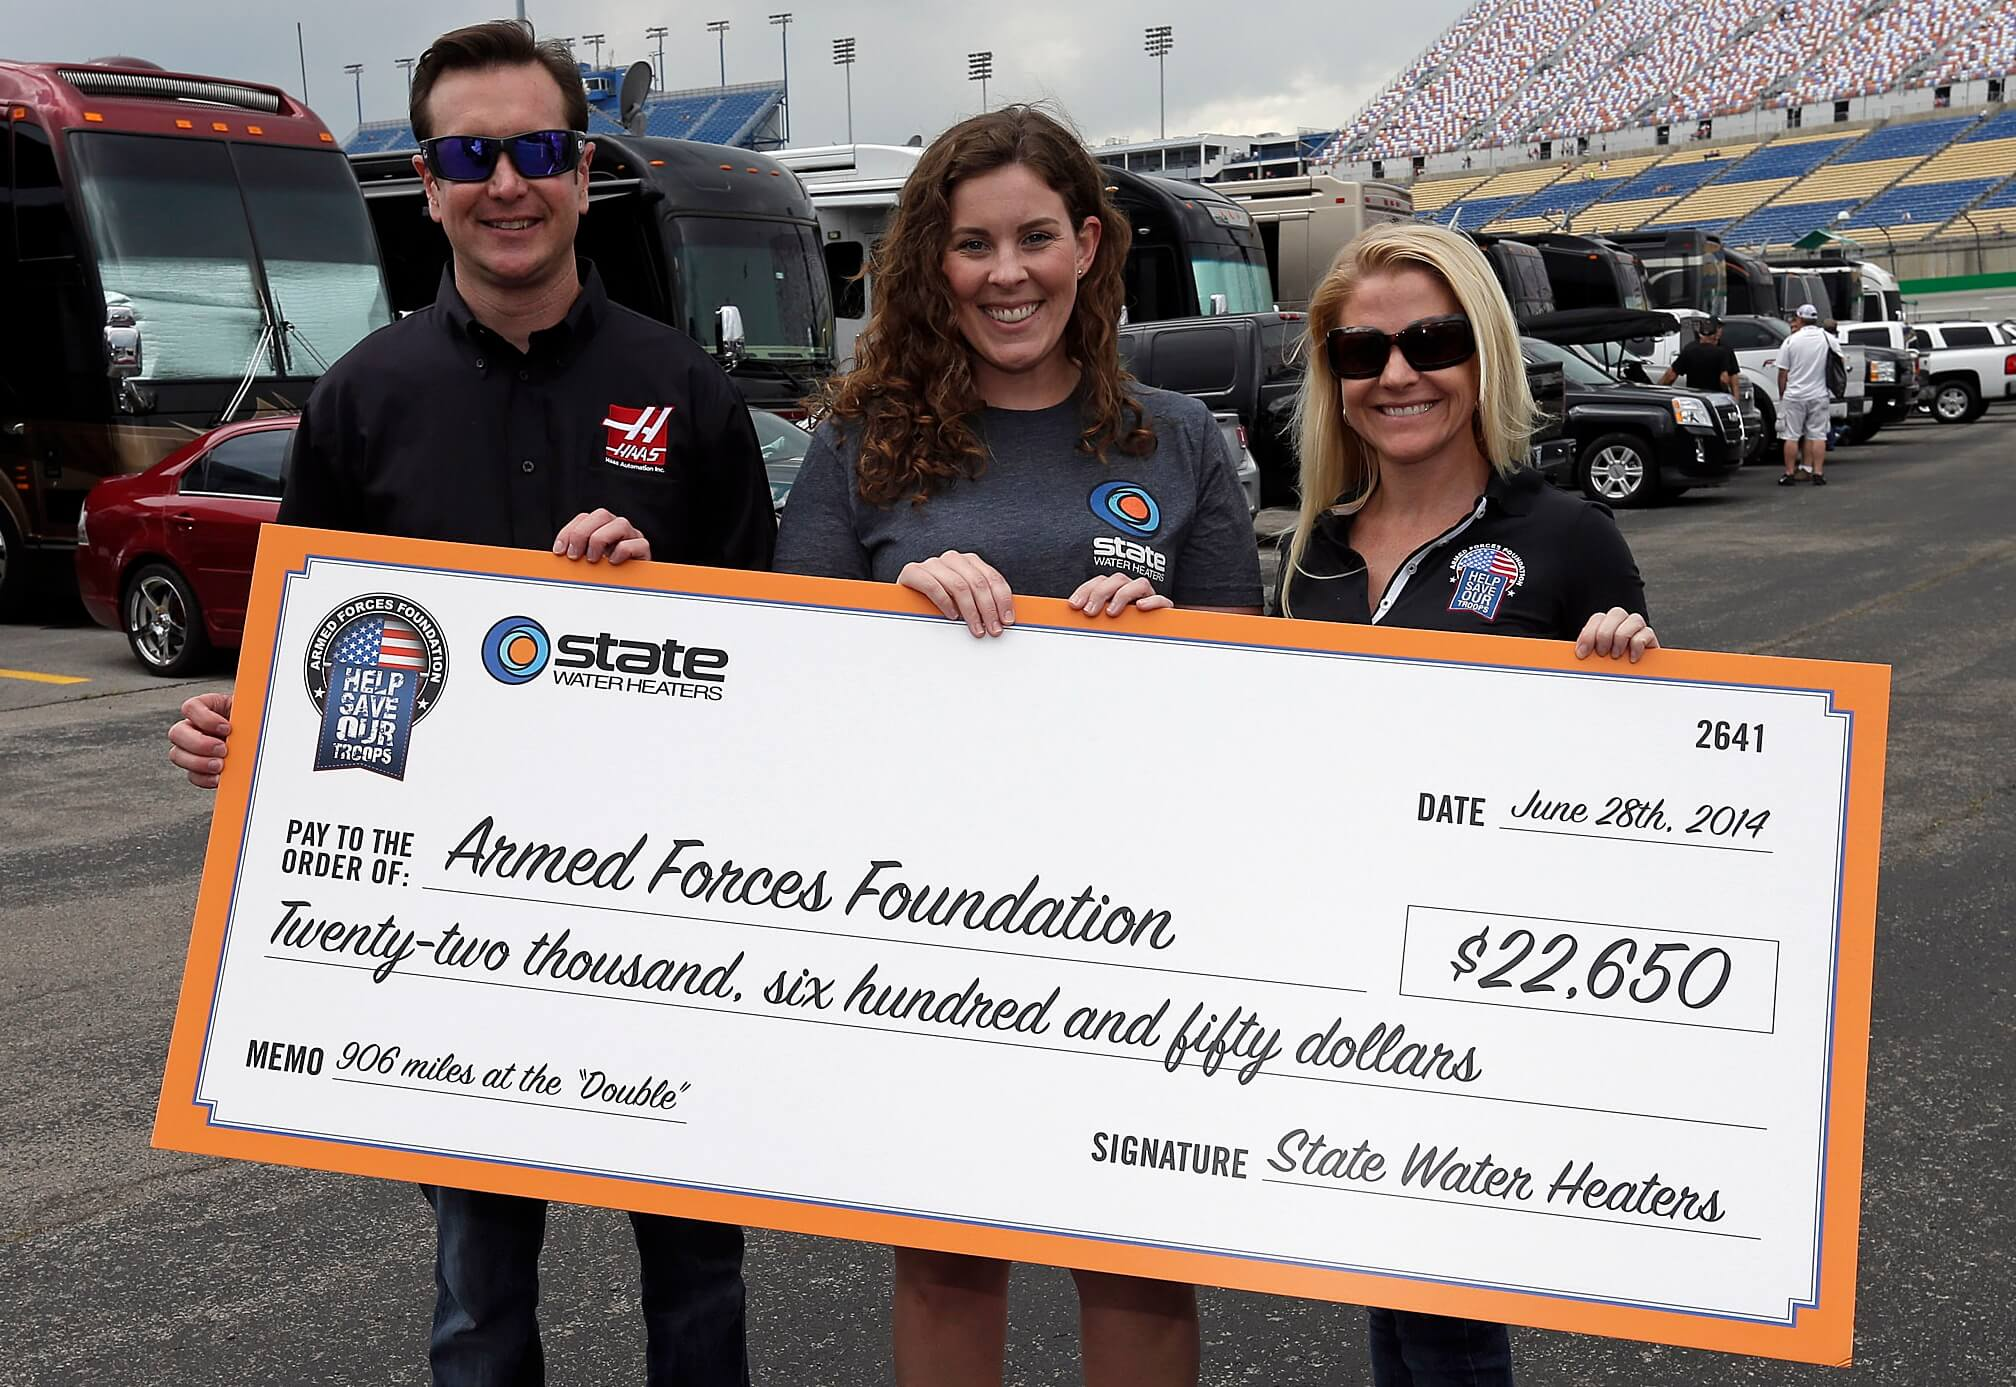 Patricia Driscoll and Kurt Busch - Armed Forces Foundation Donation